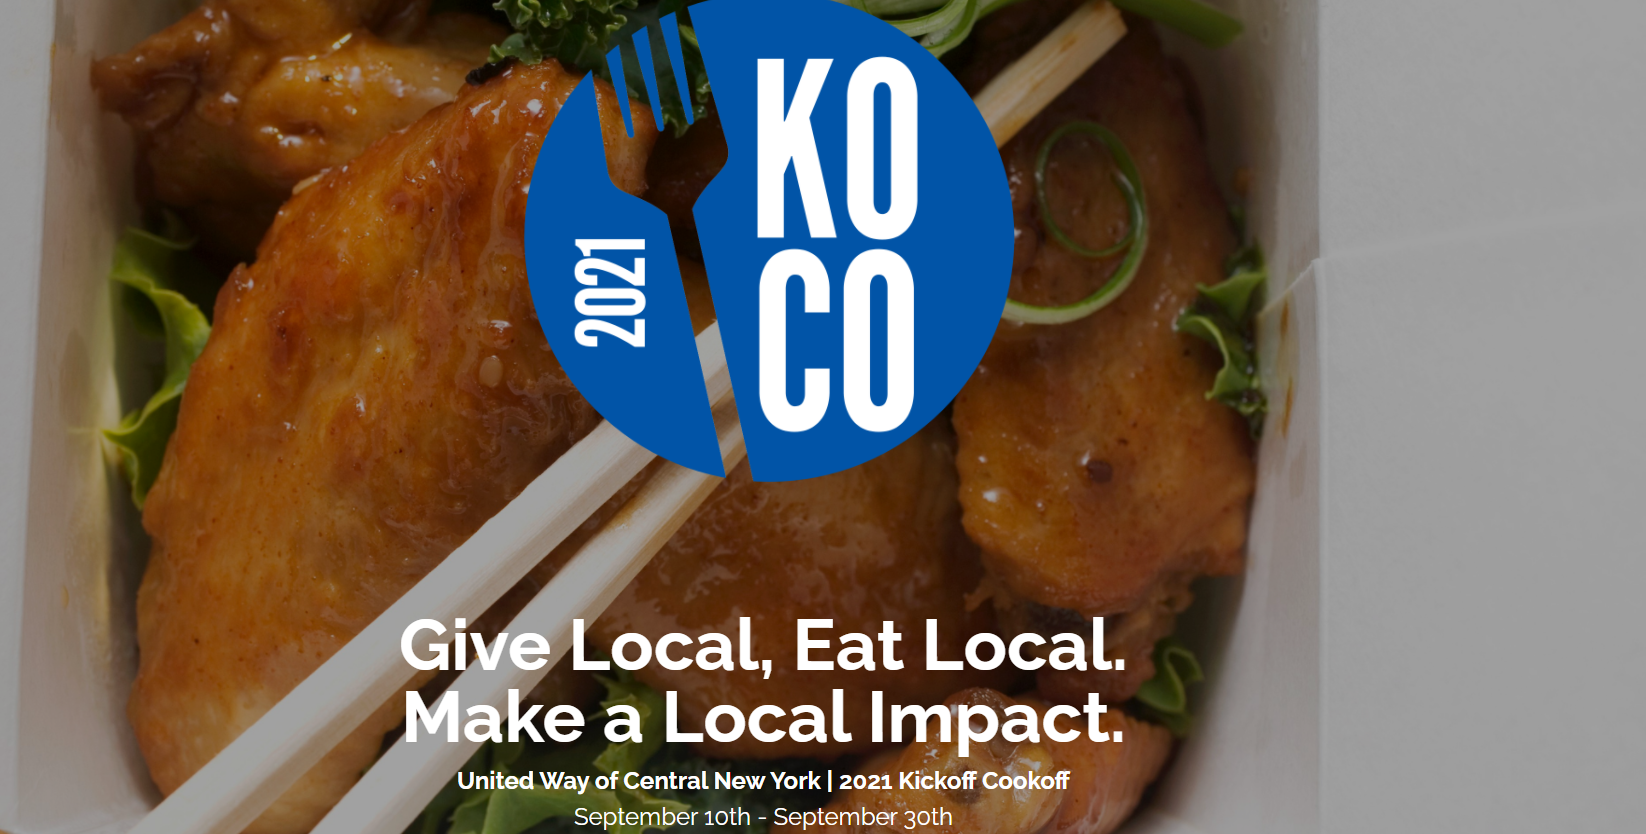 United Way of CNY 2021 Kickoff Cookoff   September 10th-30th